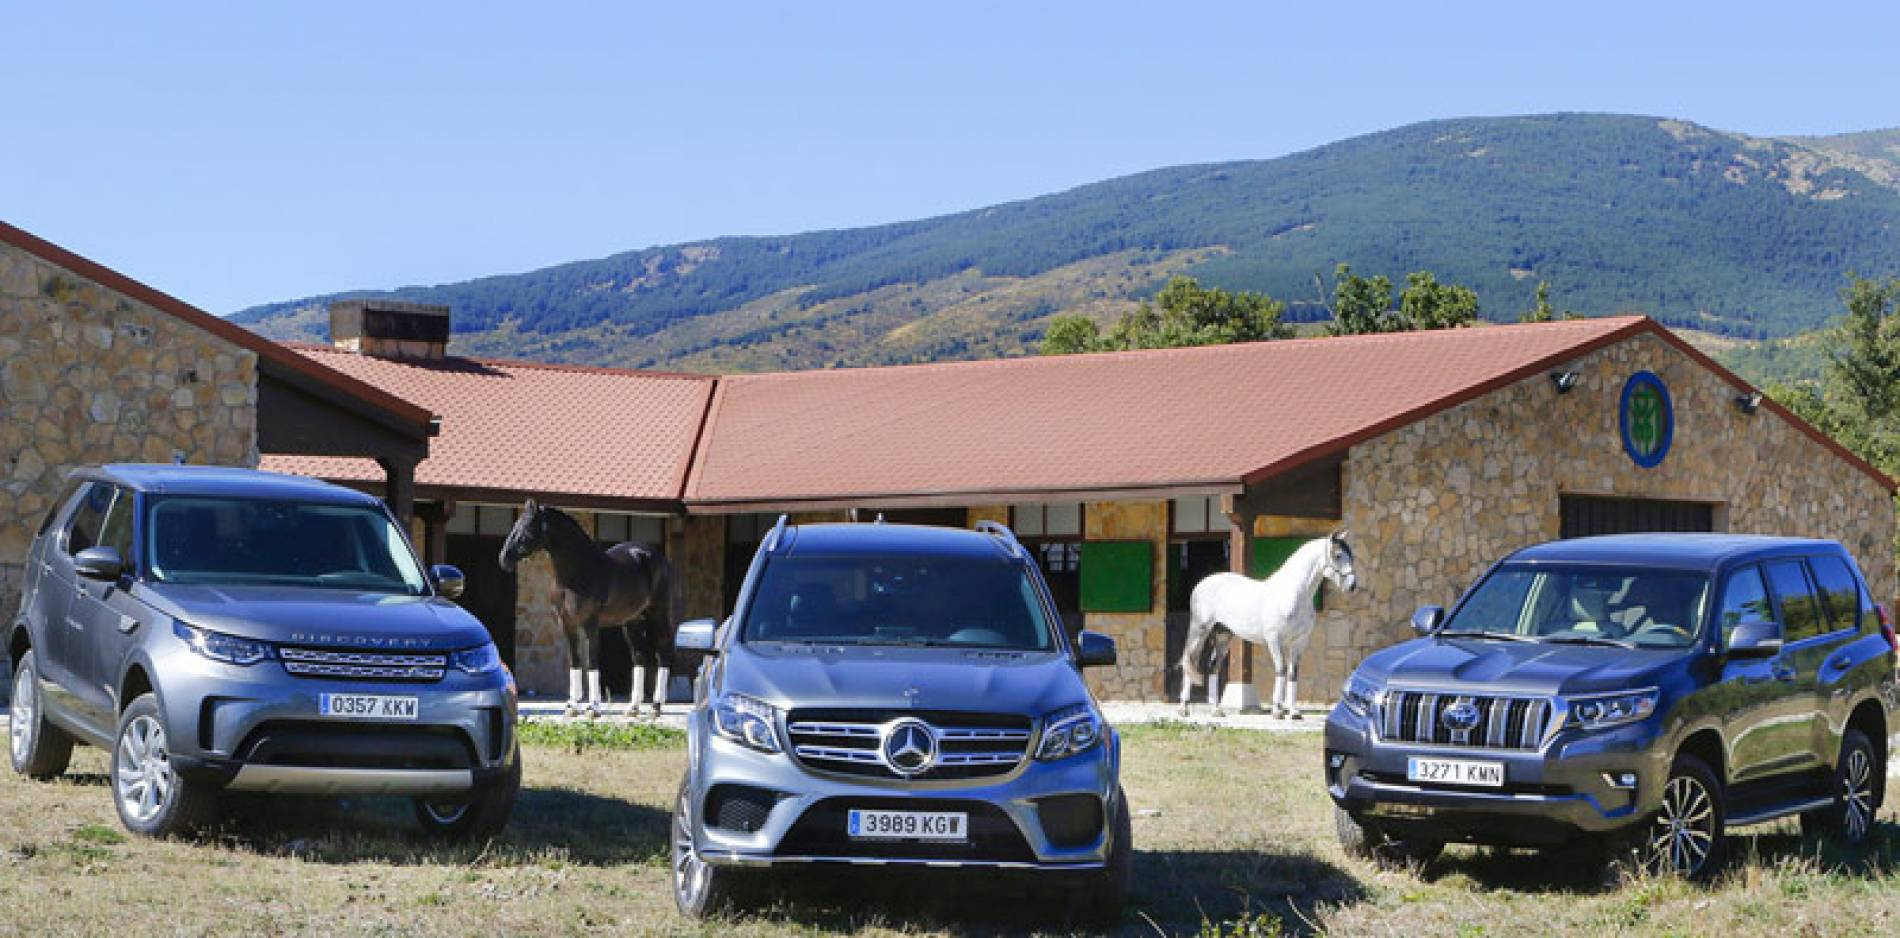 Comparativa de todoterrenos de verdad: Land Rover Discovery vs Toyota Land Cruiser vs Mercedes-Benz GLS